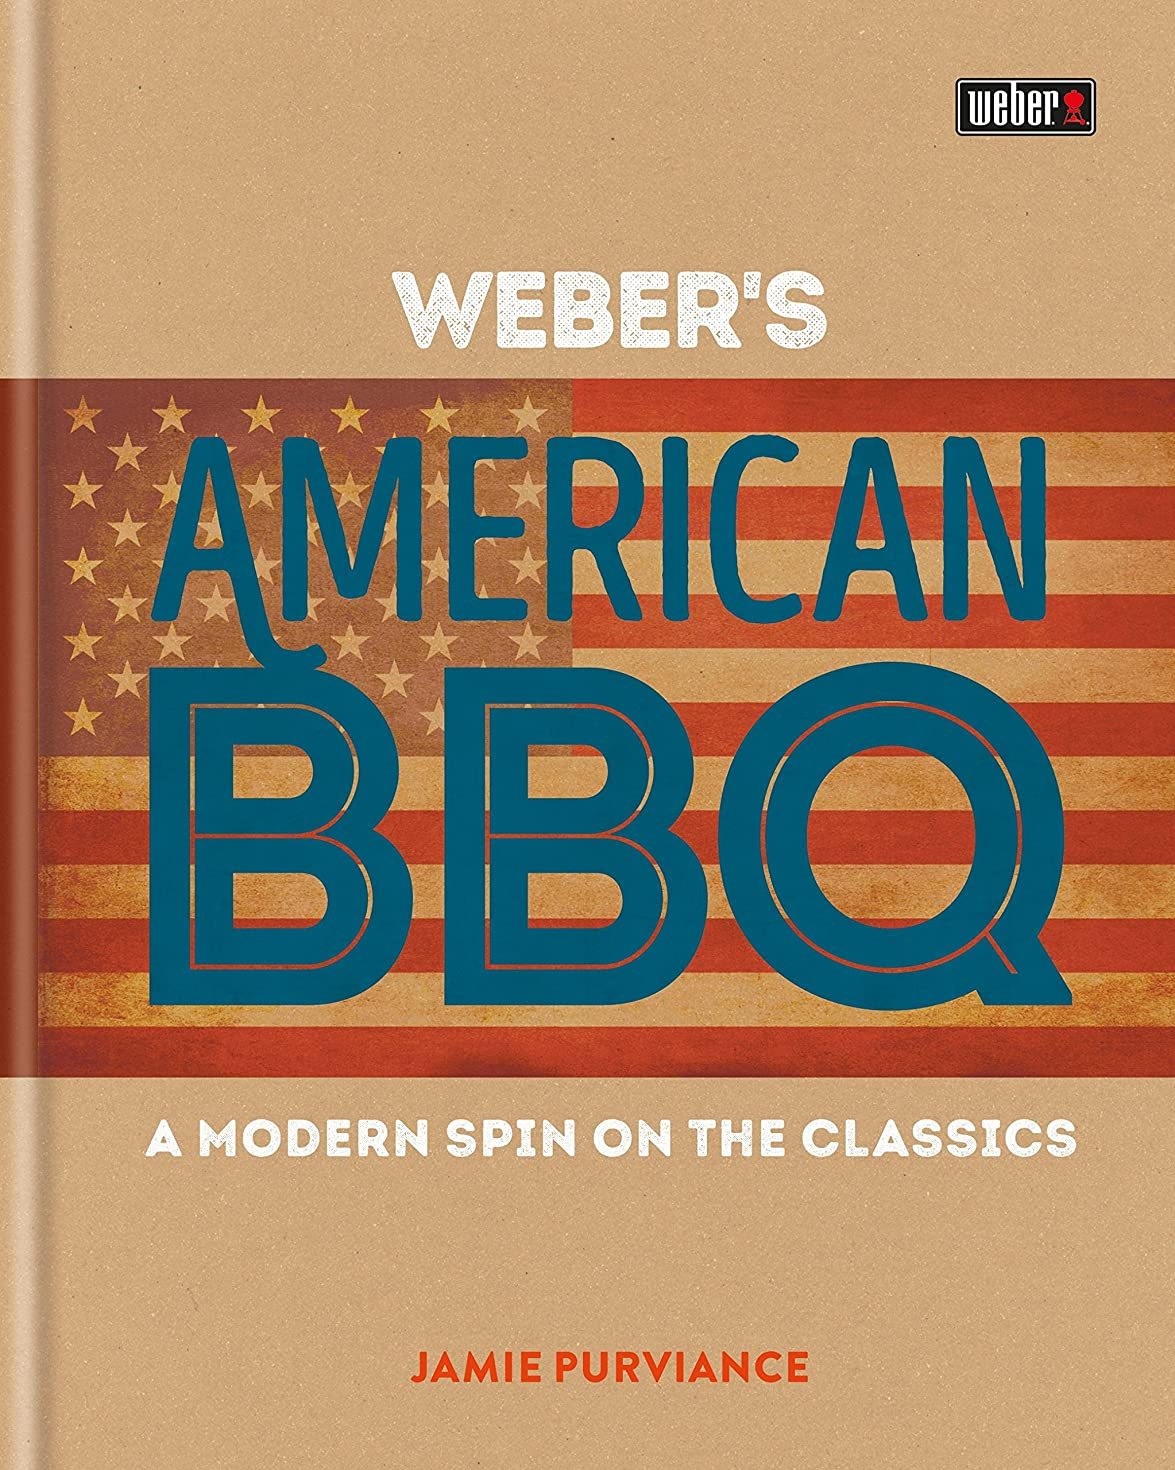 取得失望けん引Weber's American Barbecue (English Edition)